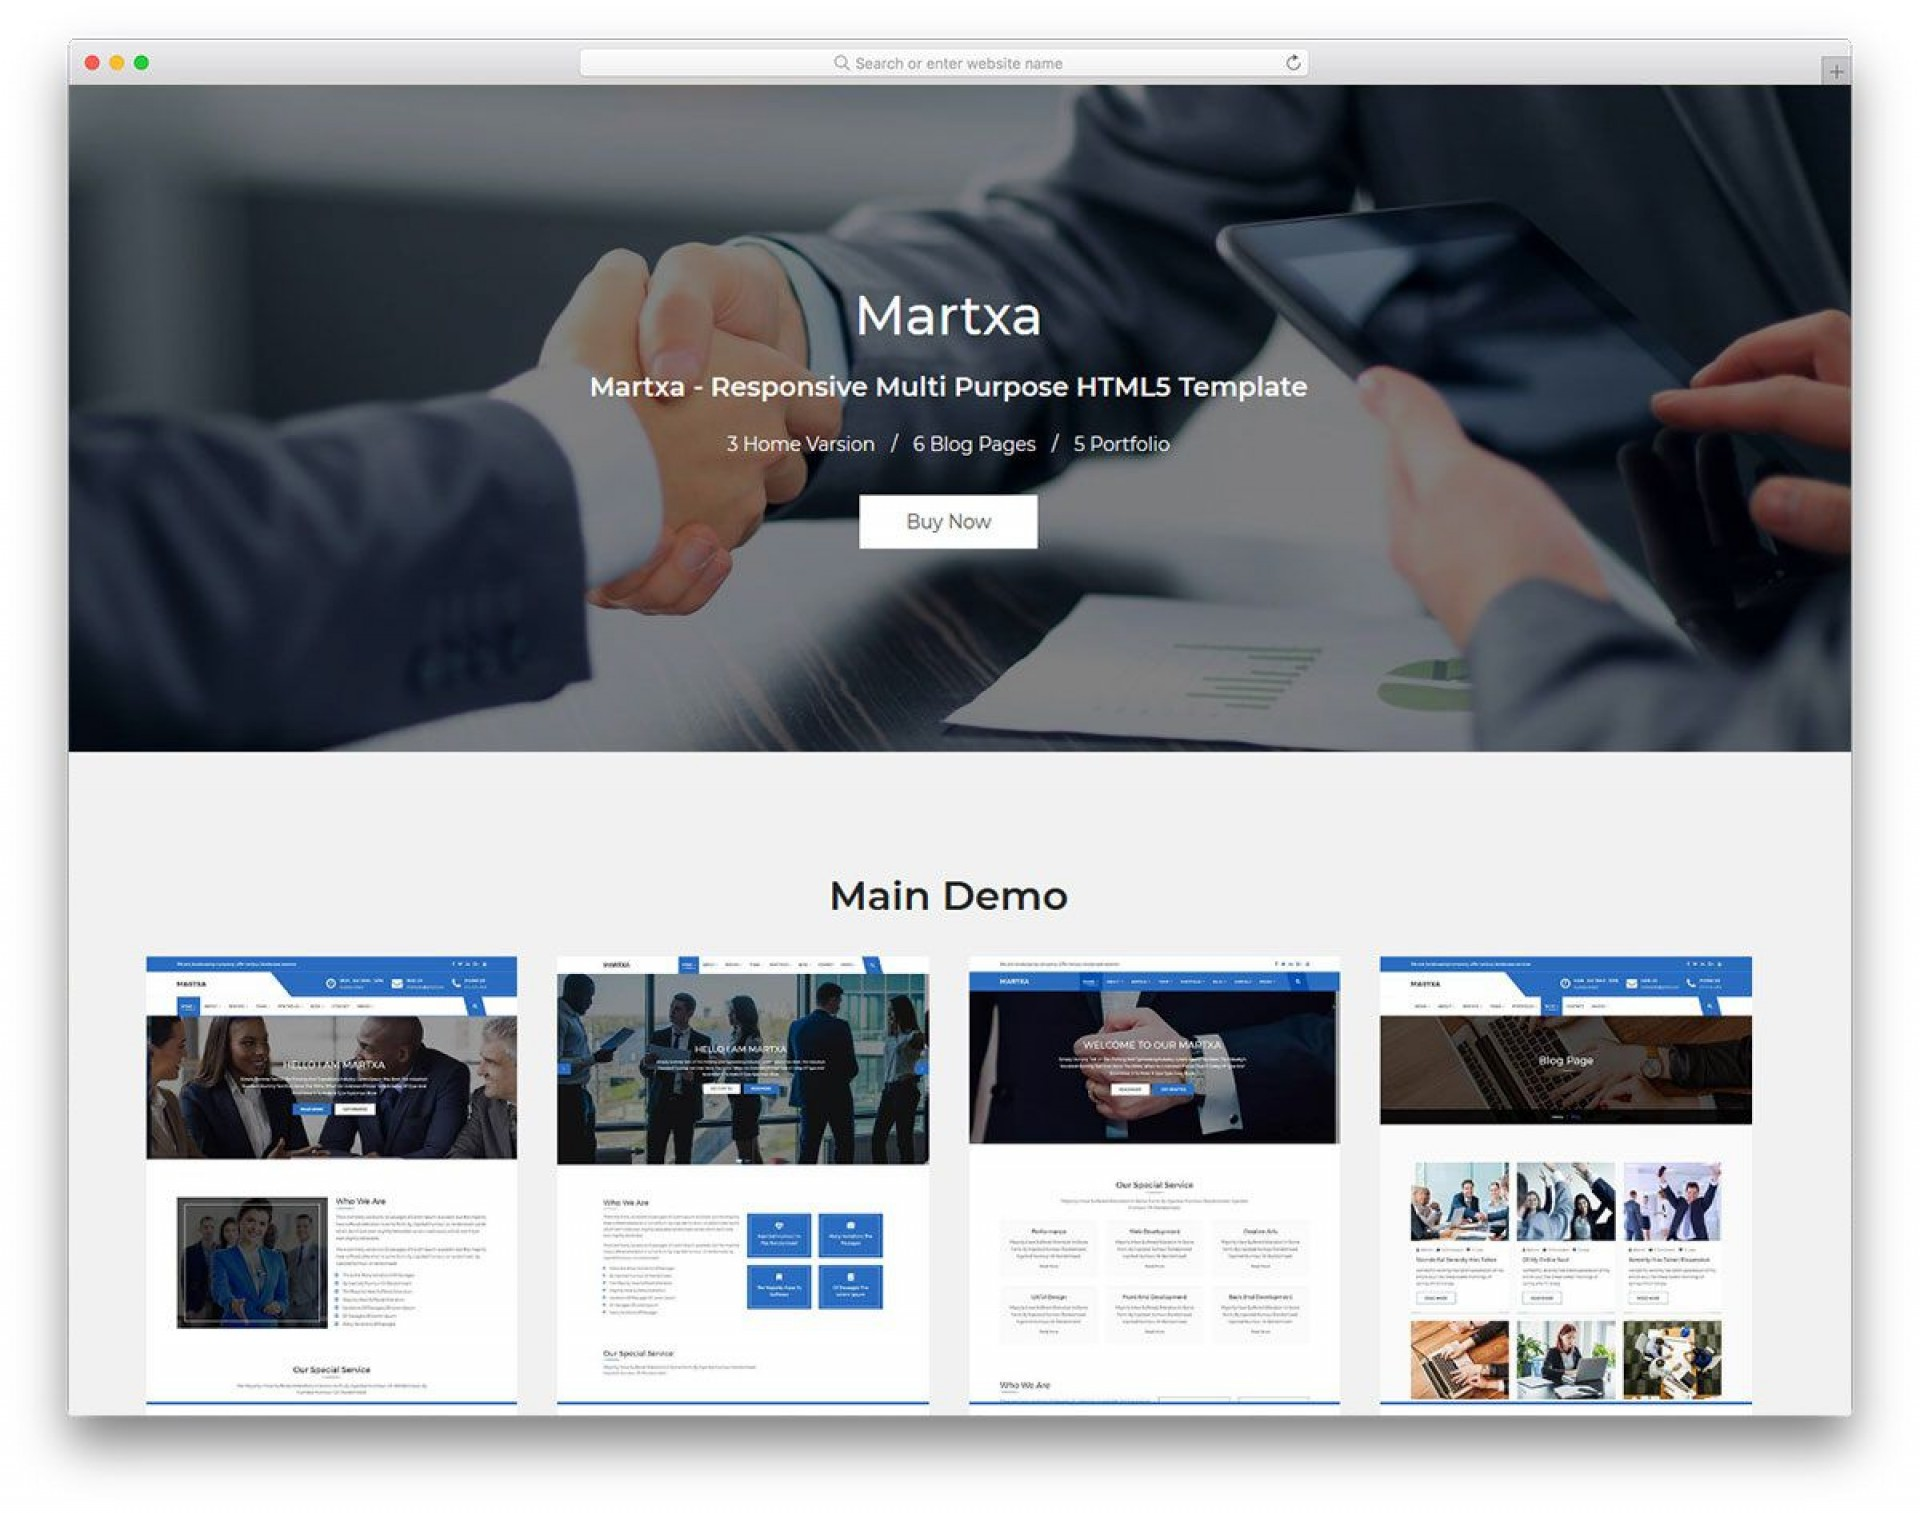 005 Staggering Free Html5 Web Template High Resolution  Responsive With Navigation Css3 Bootstrap1920